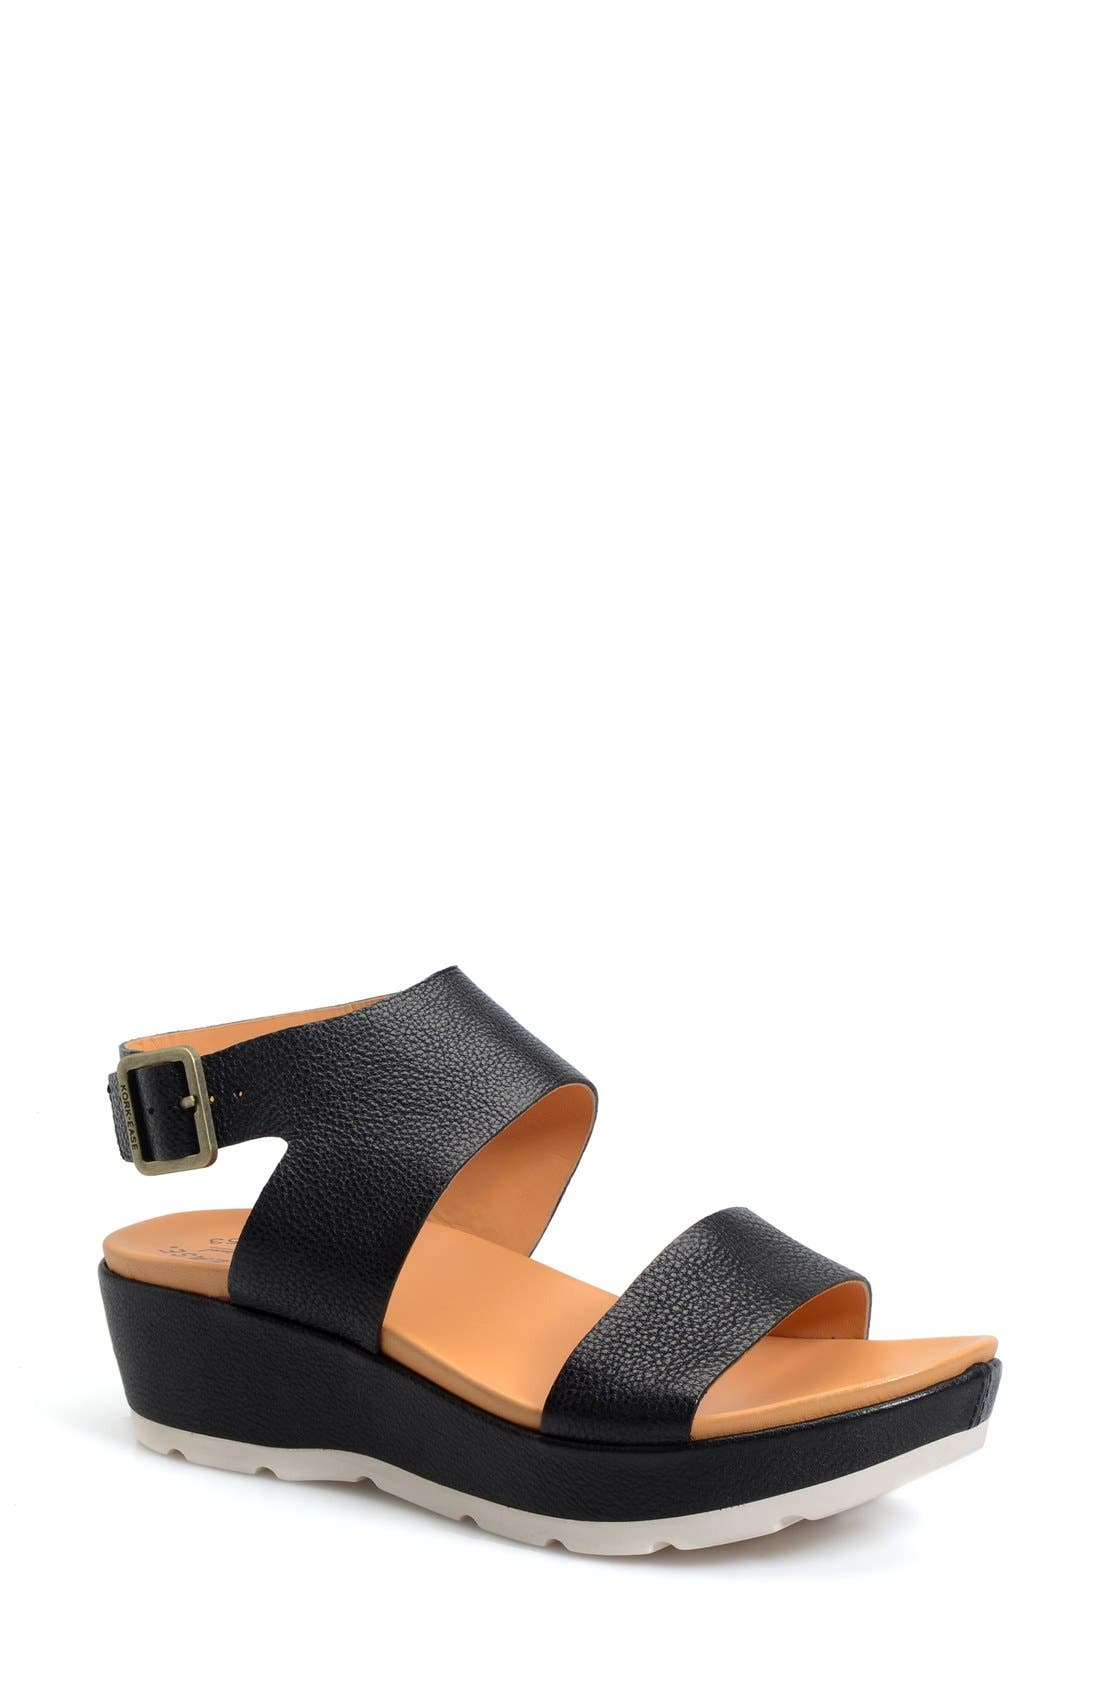 'Khloe' Platform Wedge Sandal,                             Main thumbnail 1, color,                             001